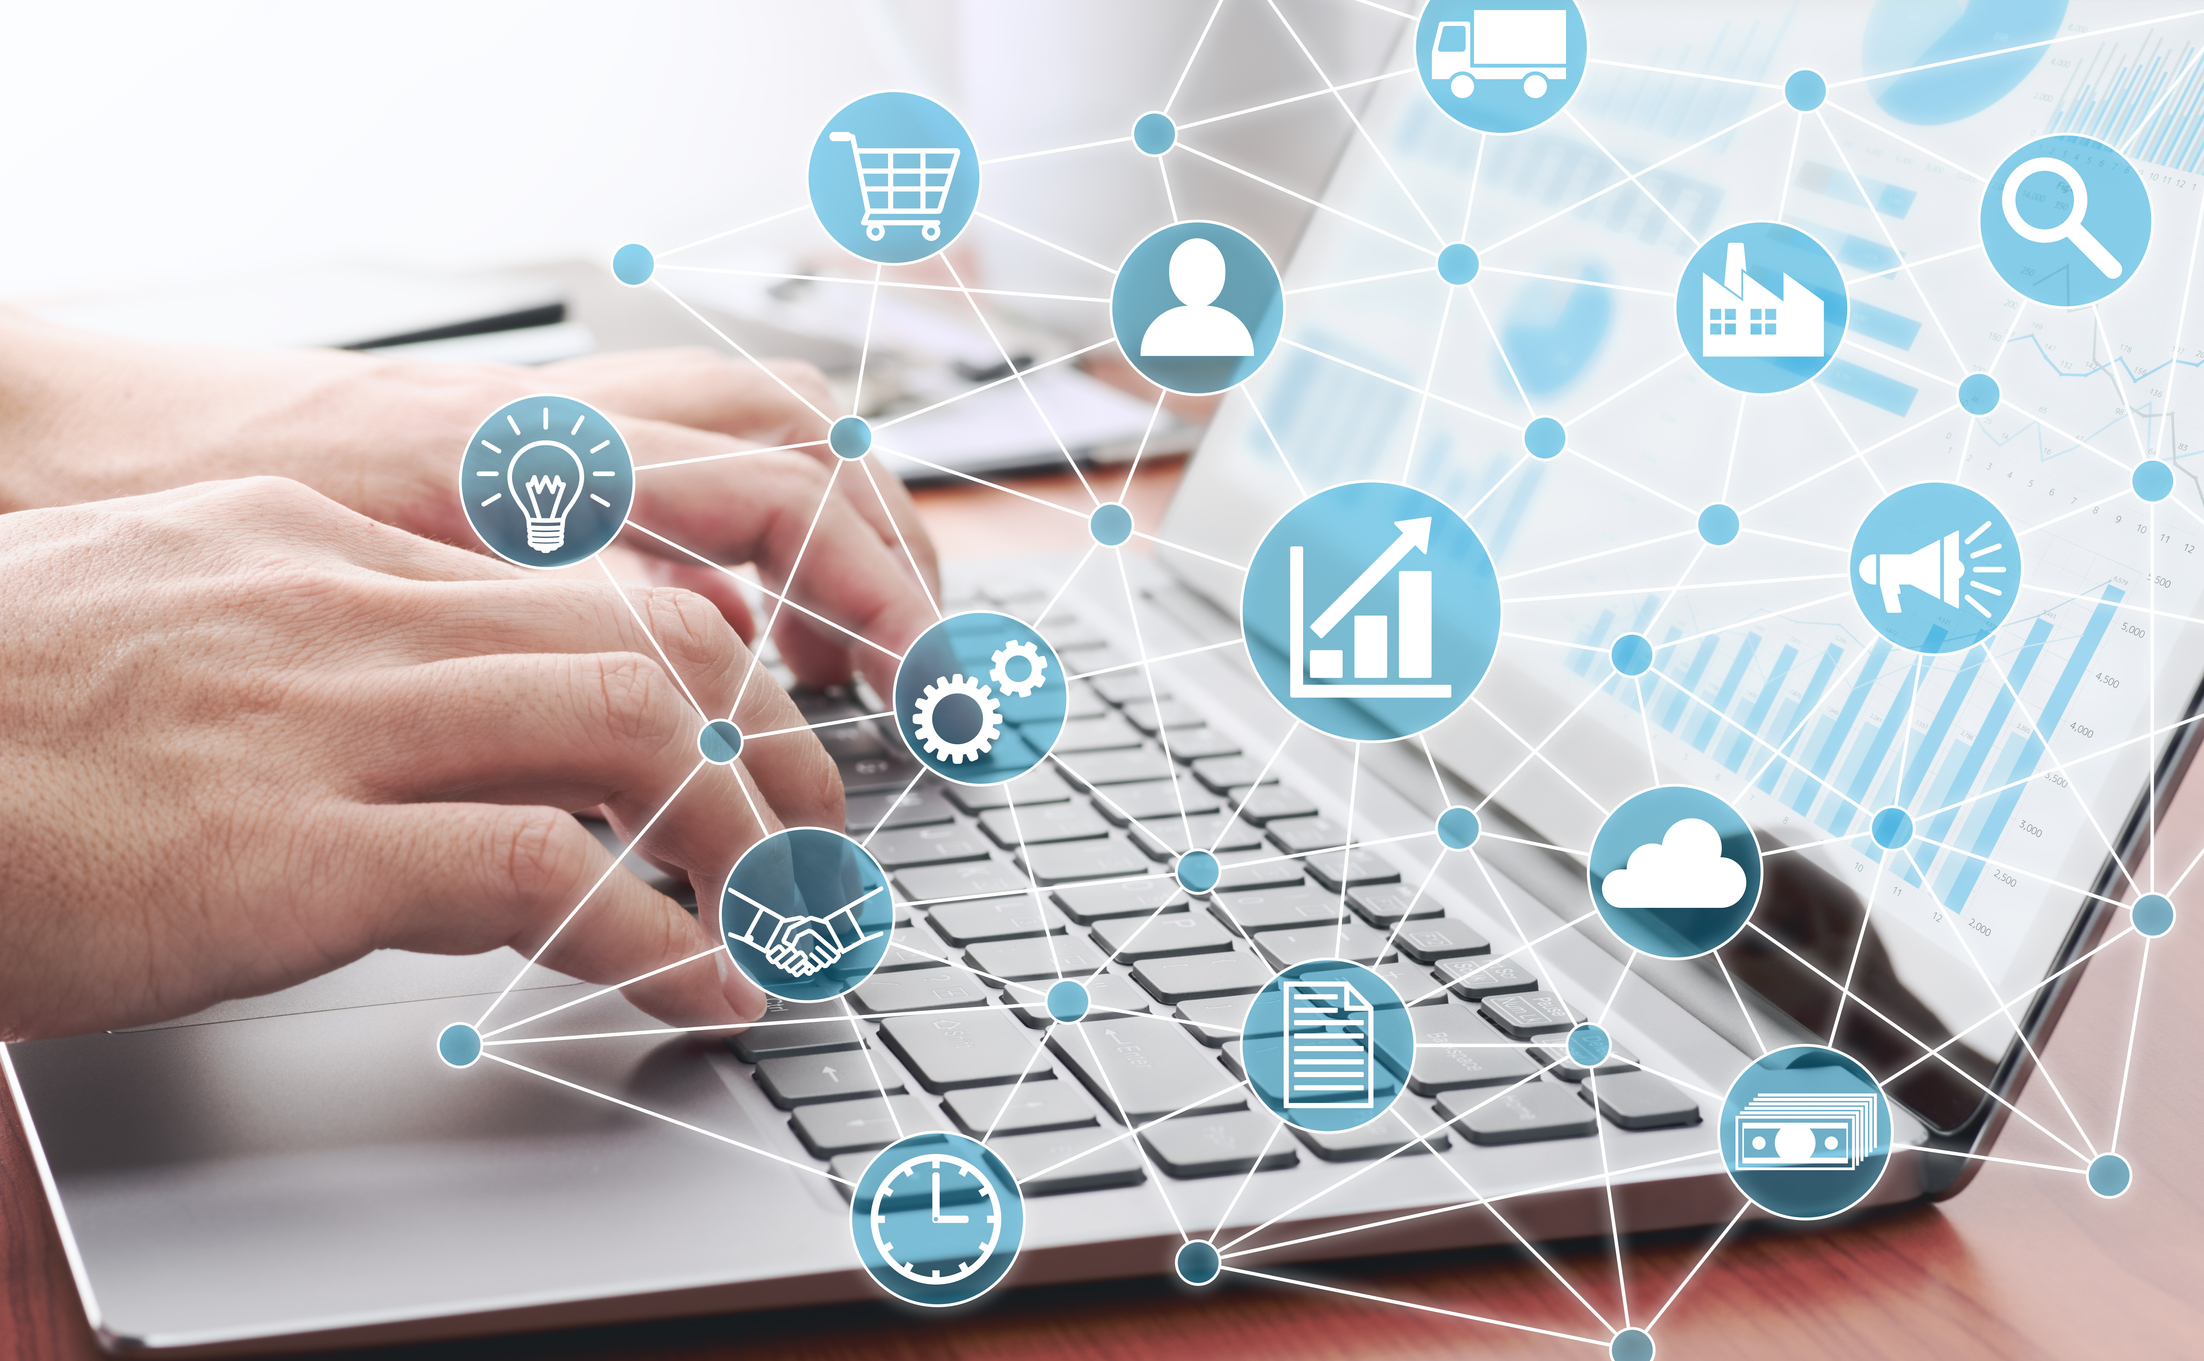 Streamline Your Business with the Right ERP System